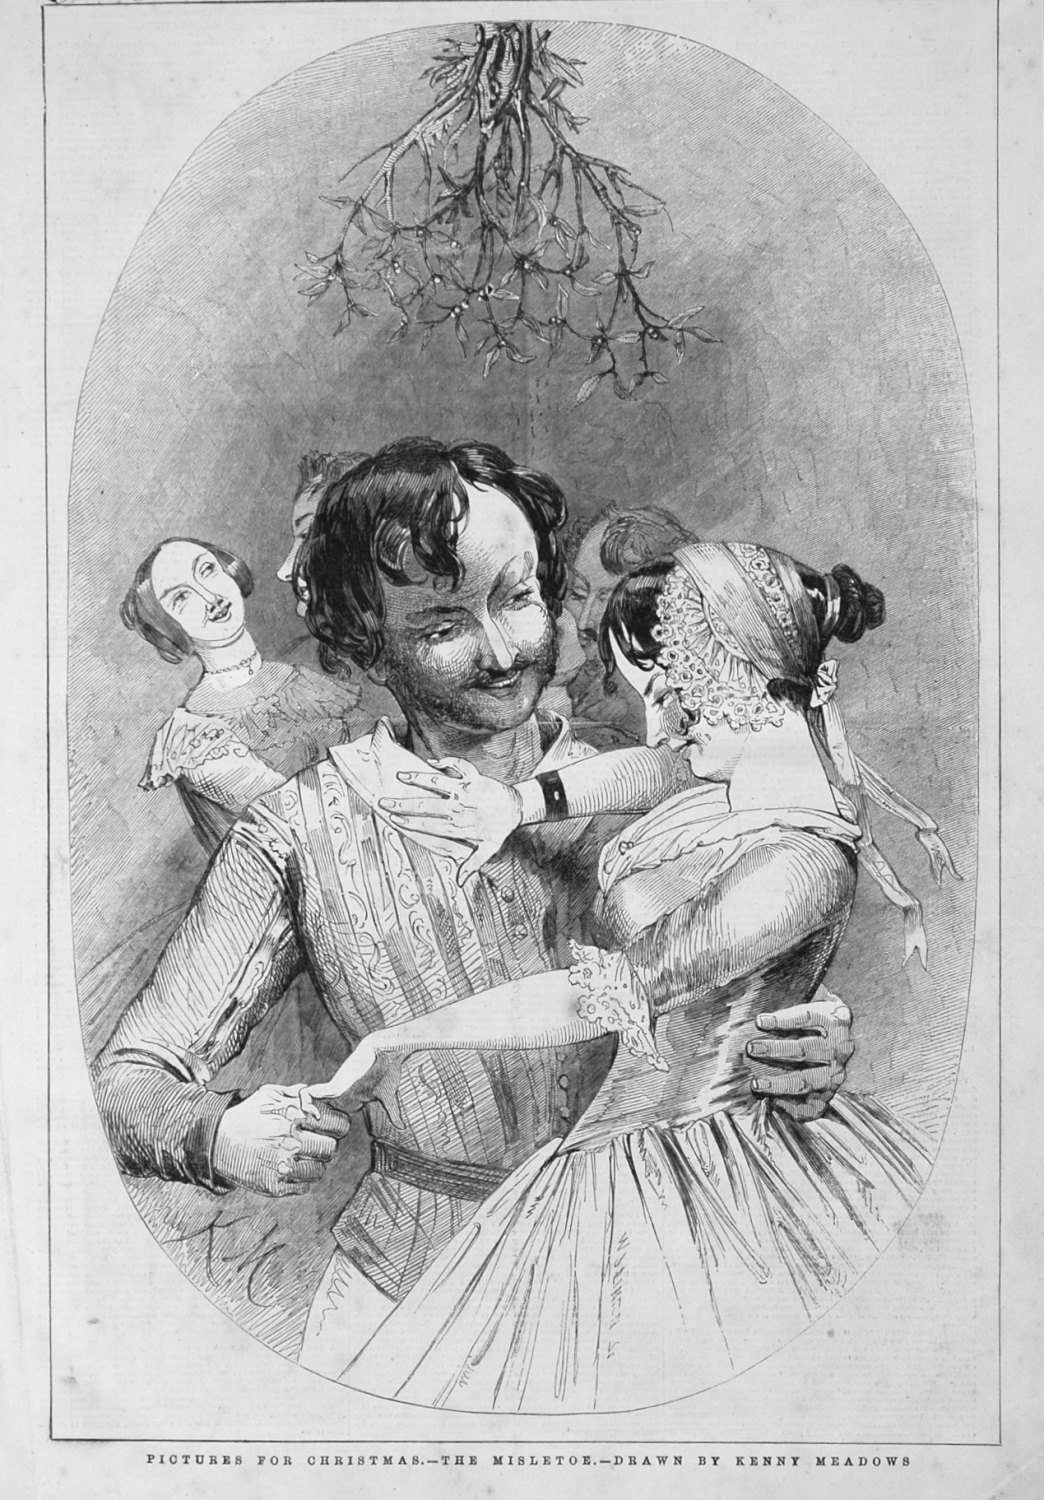 Pictures for Christmas. - The Mistletoe. - Drawn by Kenny Meadows. 1846